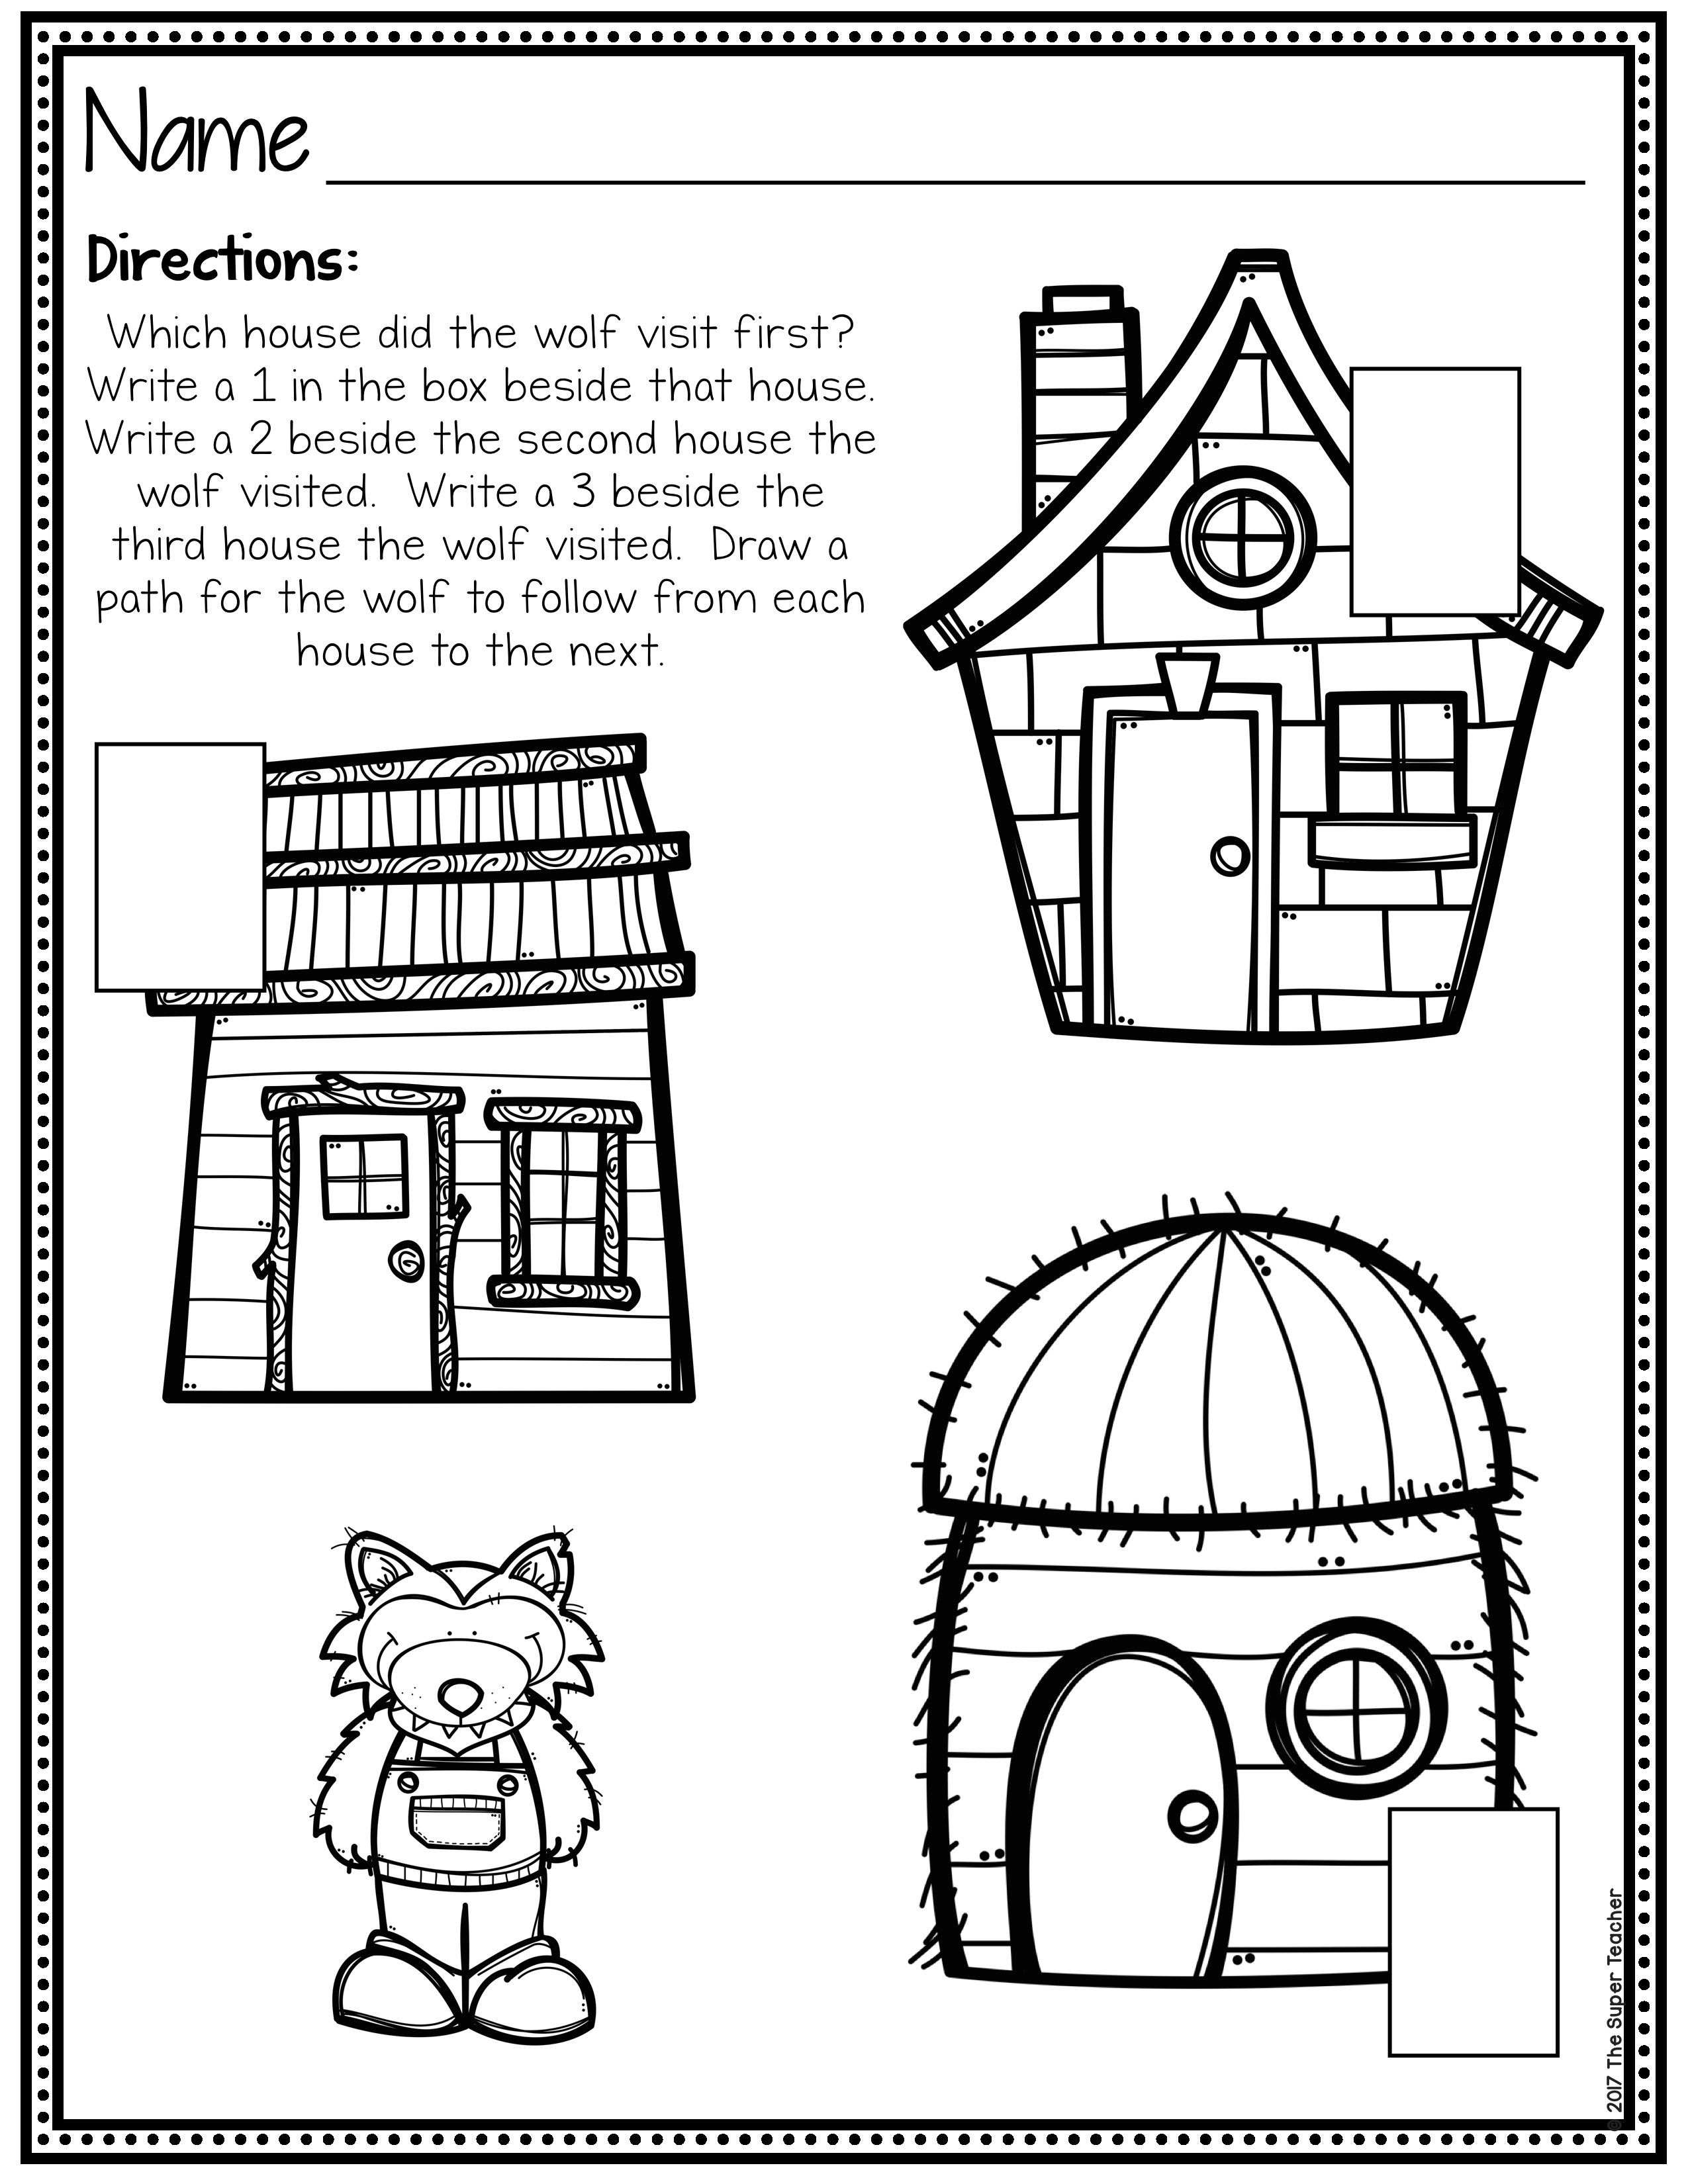 Simple Story Elements Made Practical And Fun Three Little Pigs Three Little Pigs Story Character Worksheets [ 3300 x 2550 Pixel ]